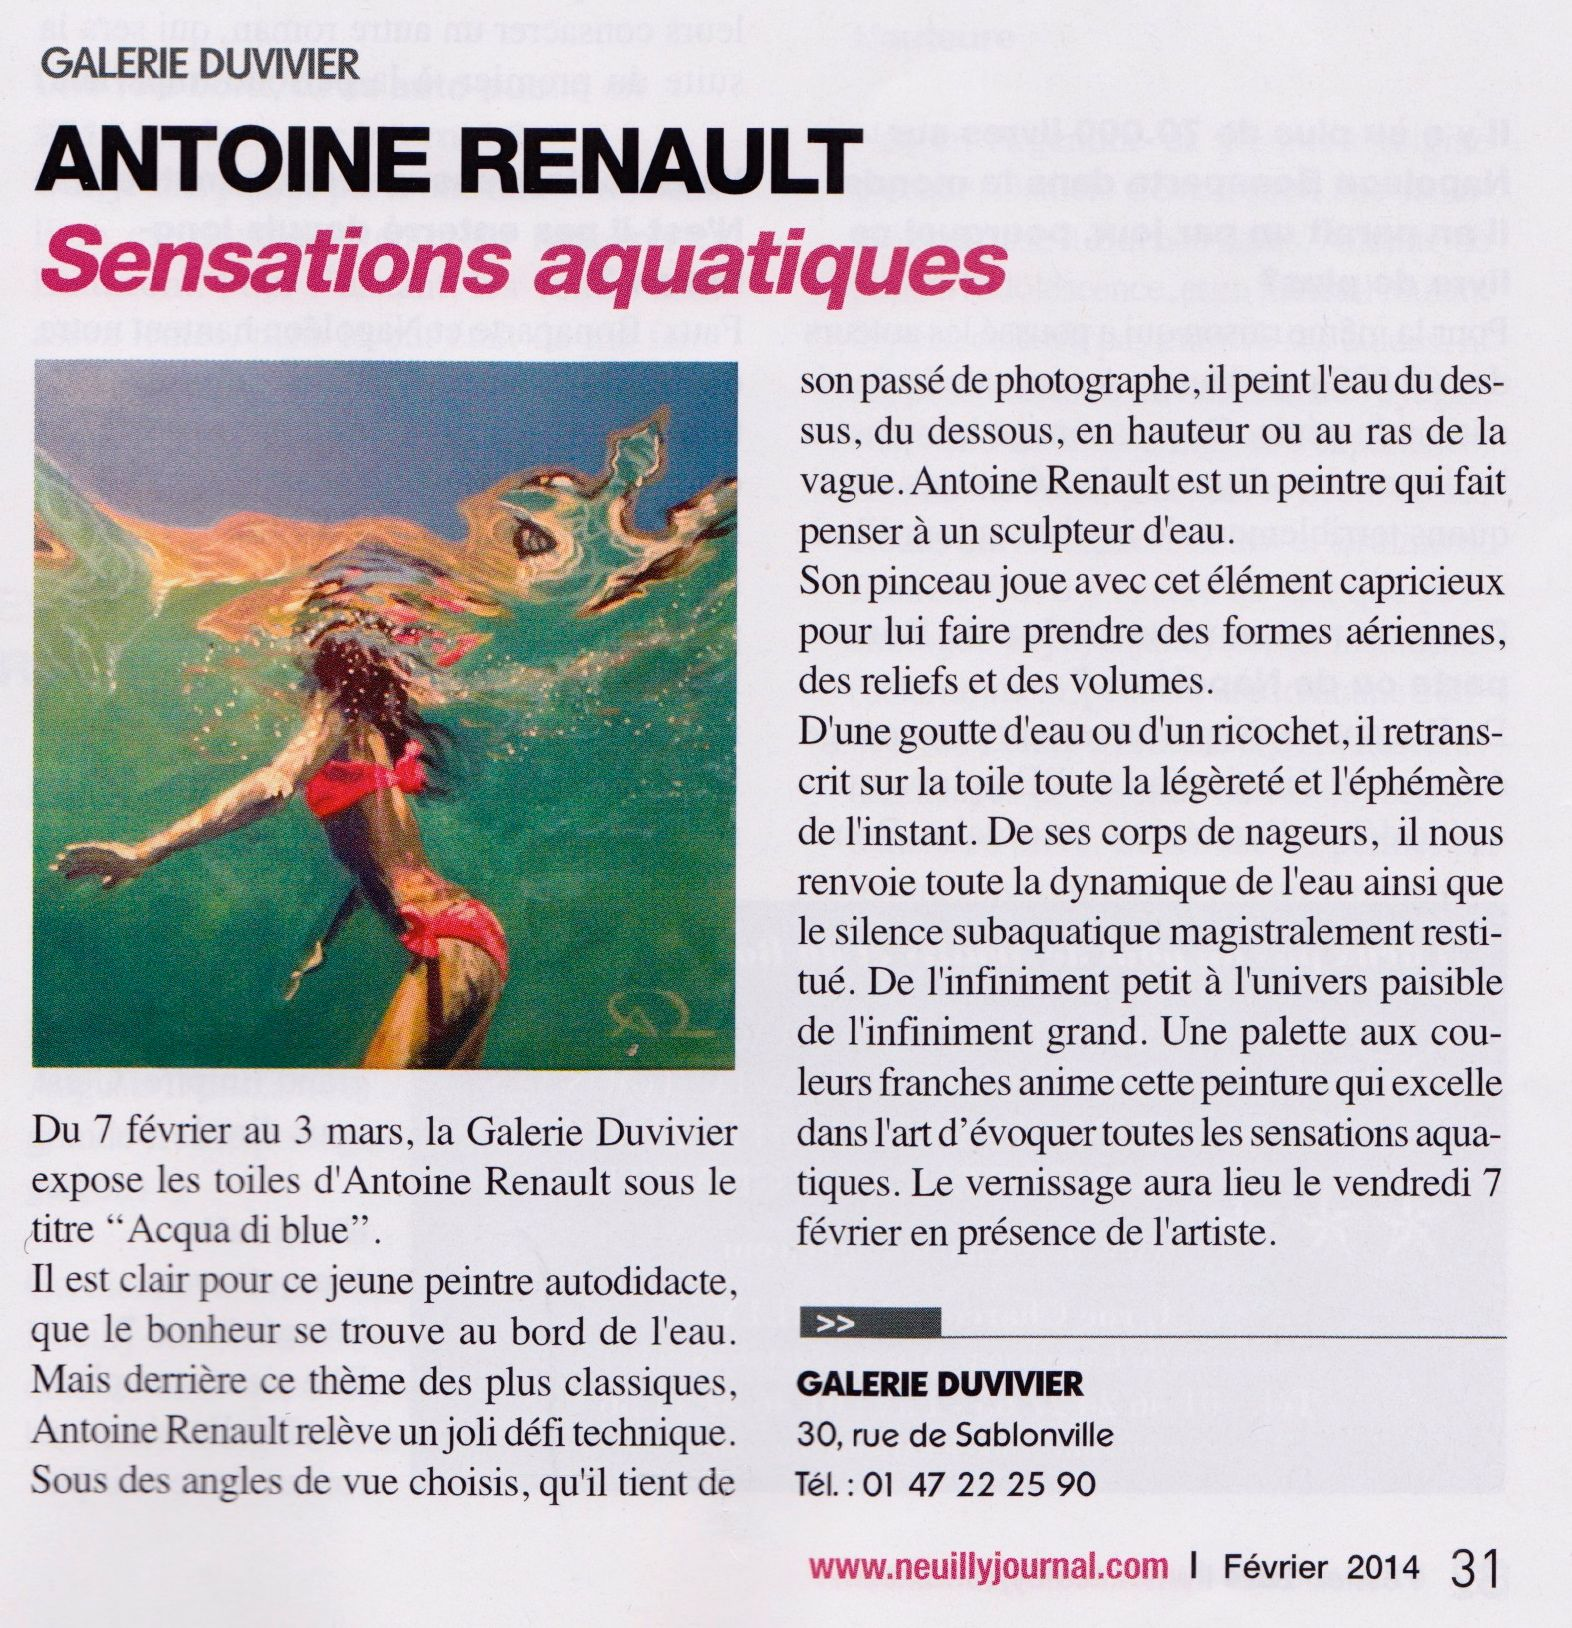 Neuilly Journal about Antoine Renault new solo exhibition